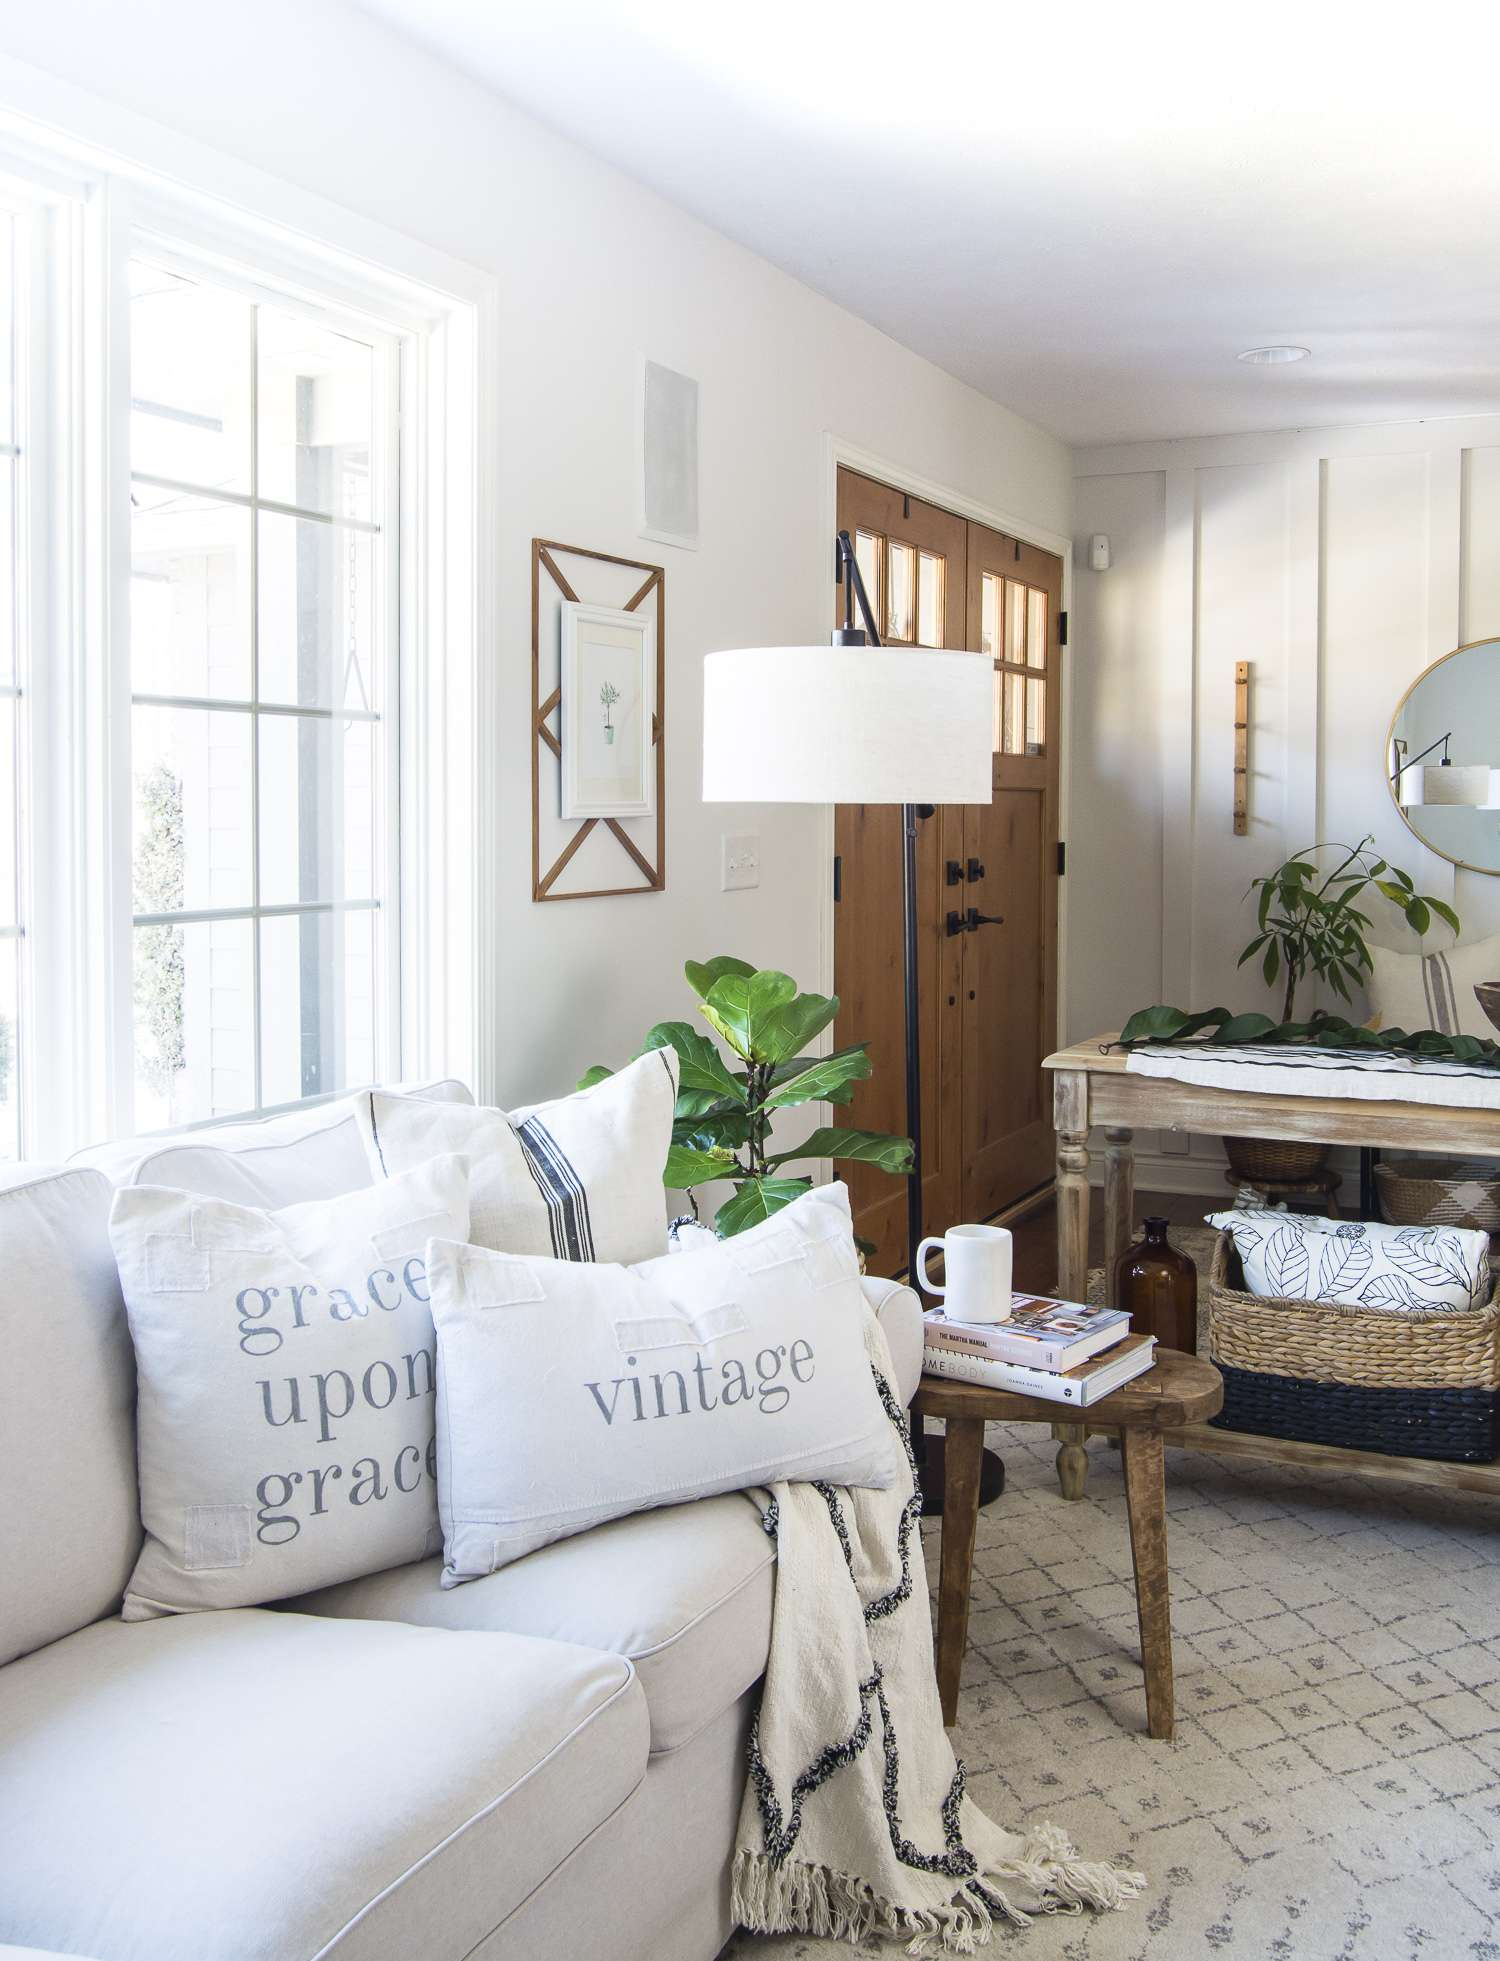 All time favorite pillow covers by With Lavender and Grace #fromhousetohaven #pillowcovers #modernfarmhouse